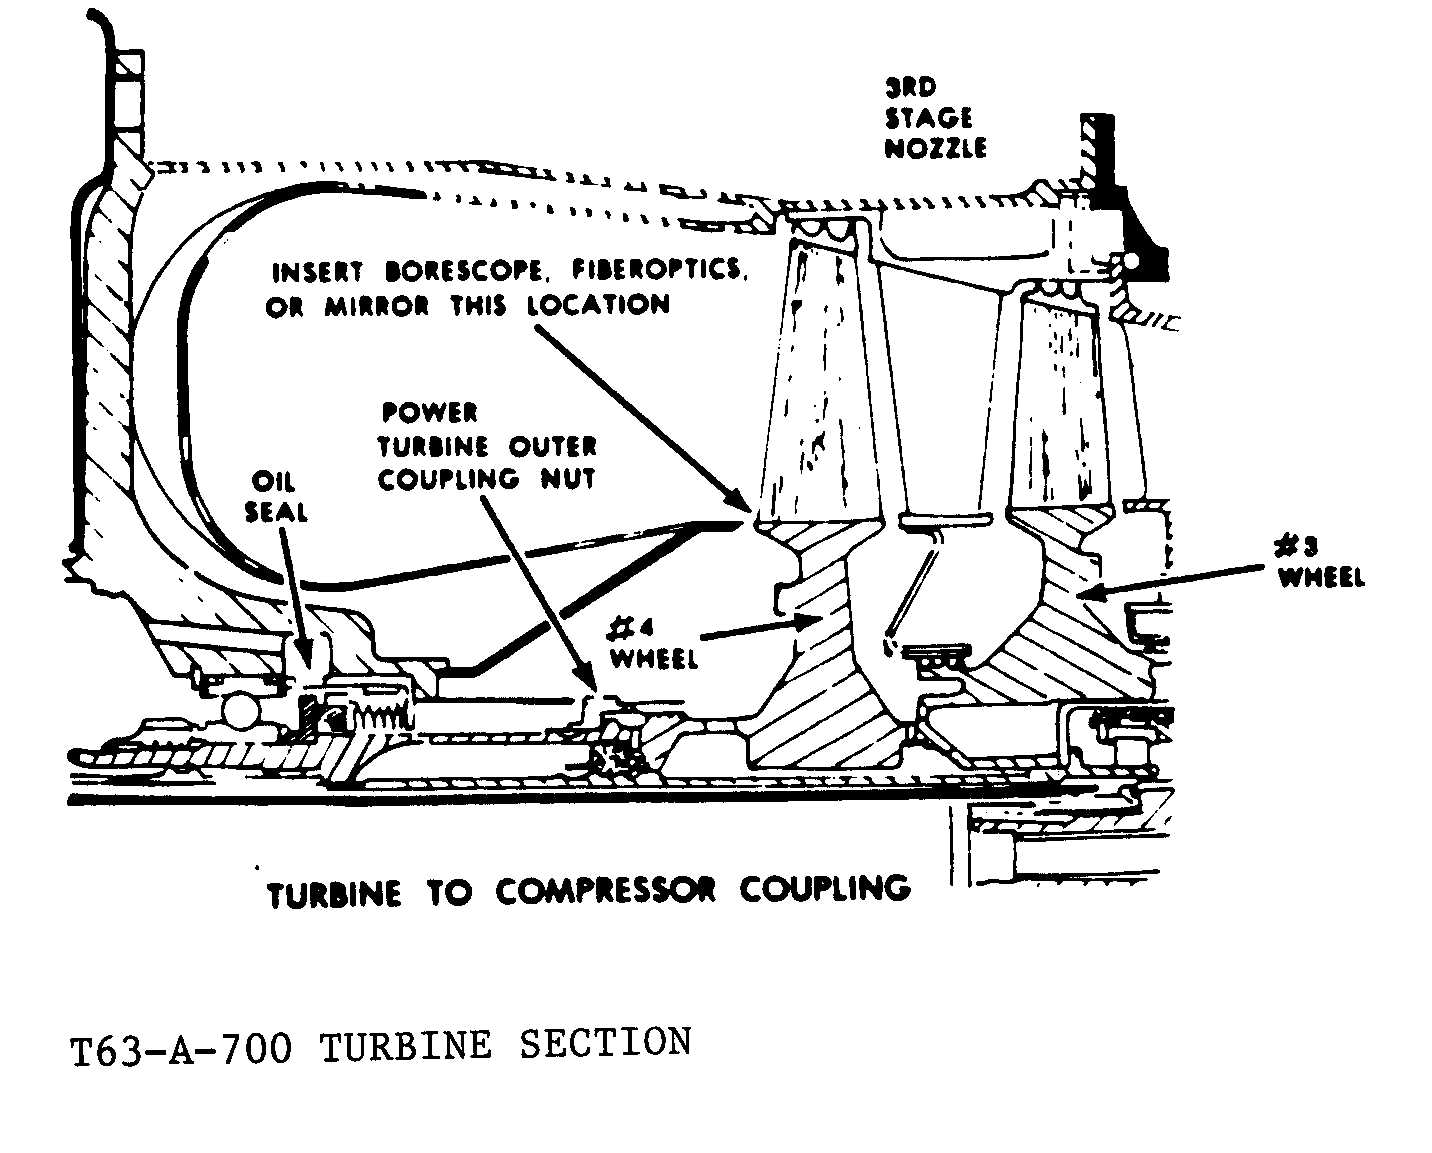 Power Turbine Outer Coupling Nut